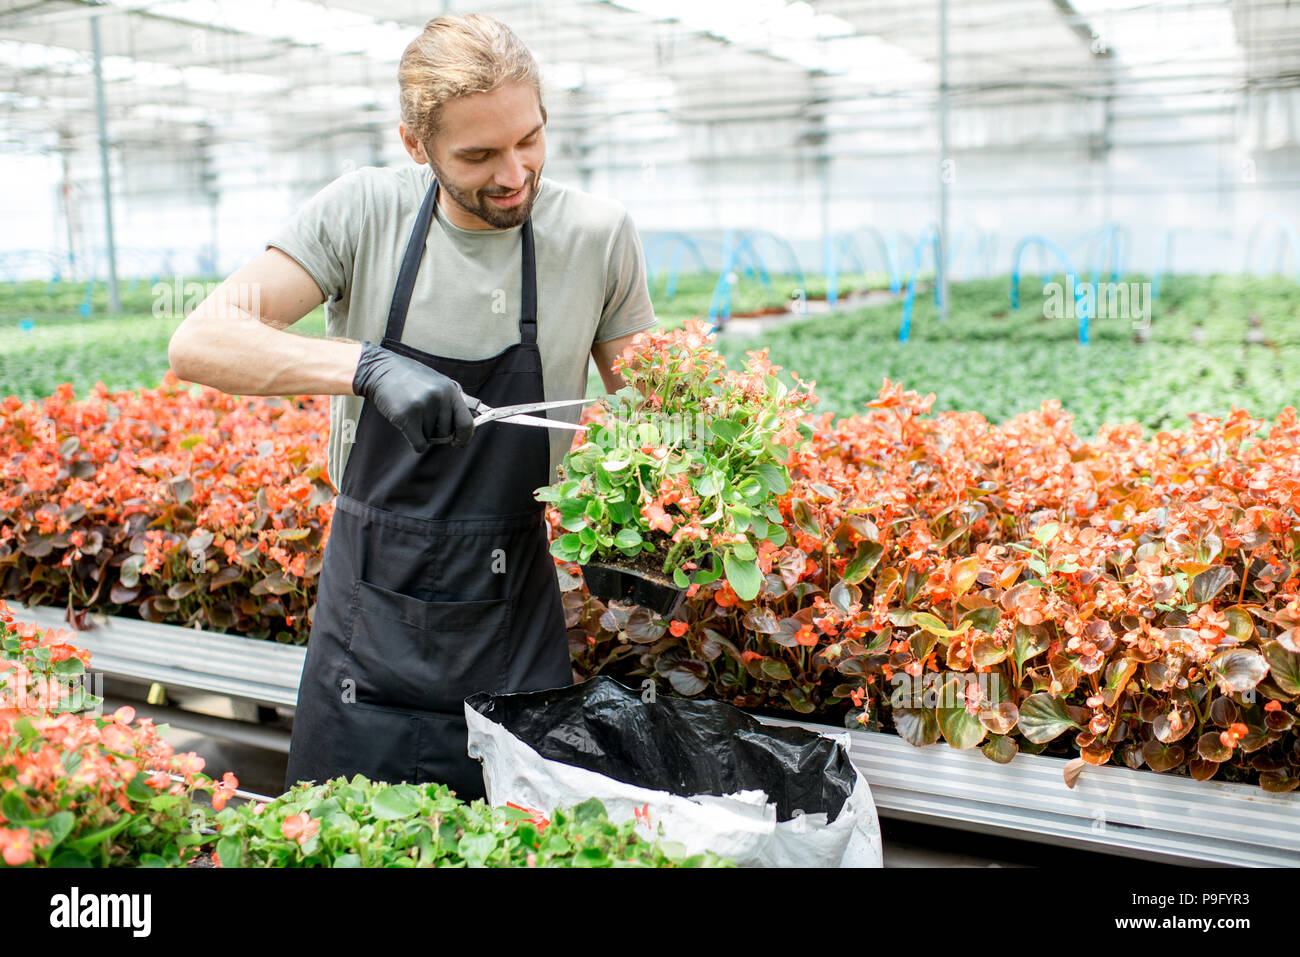 Man cutting flowers in the greenhouse - Stock Image